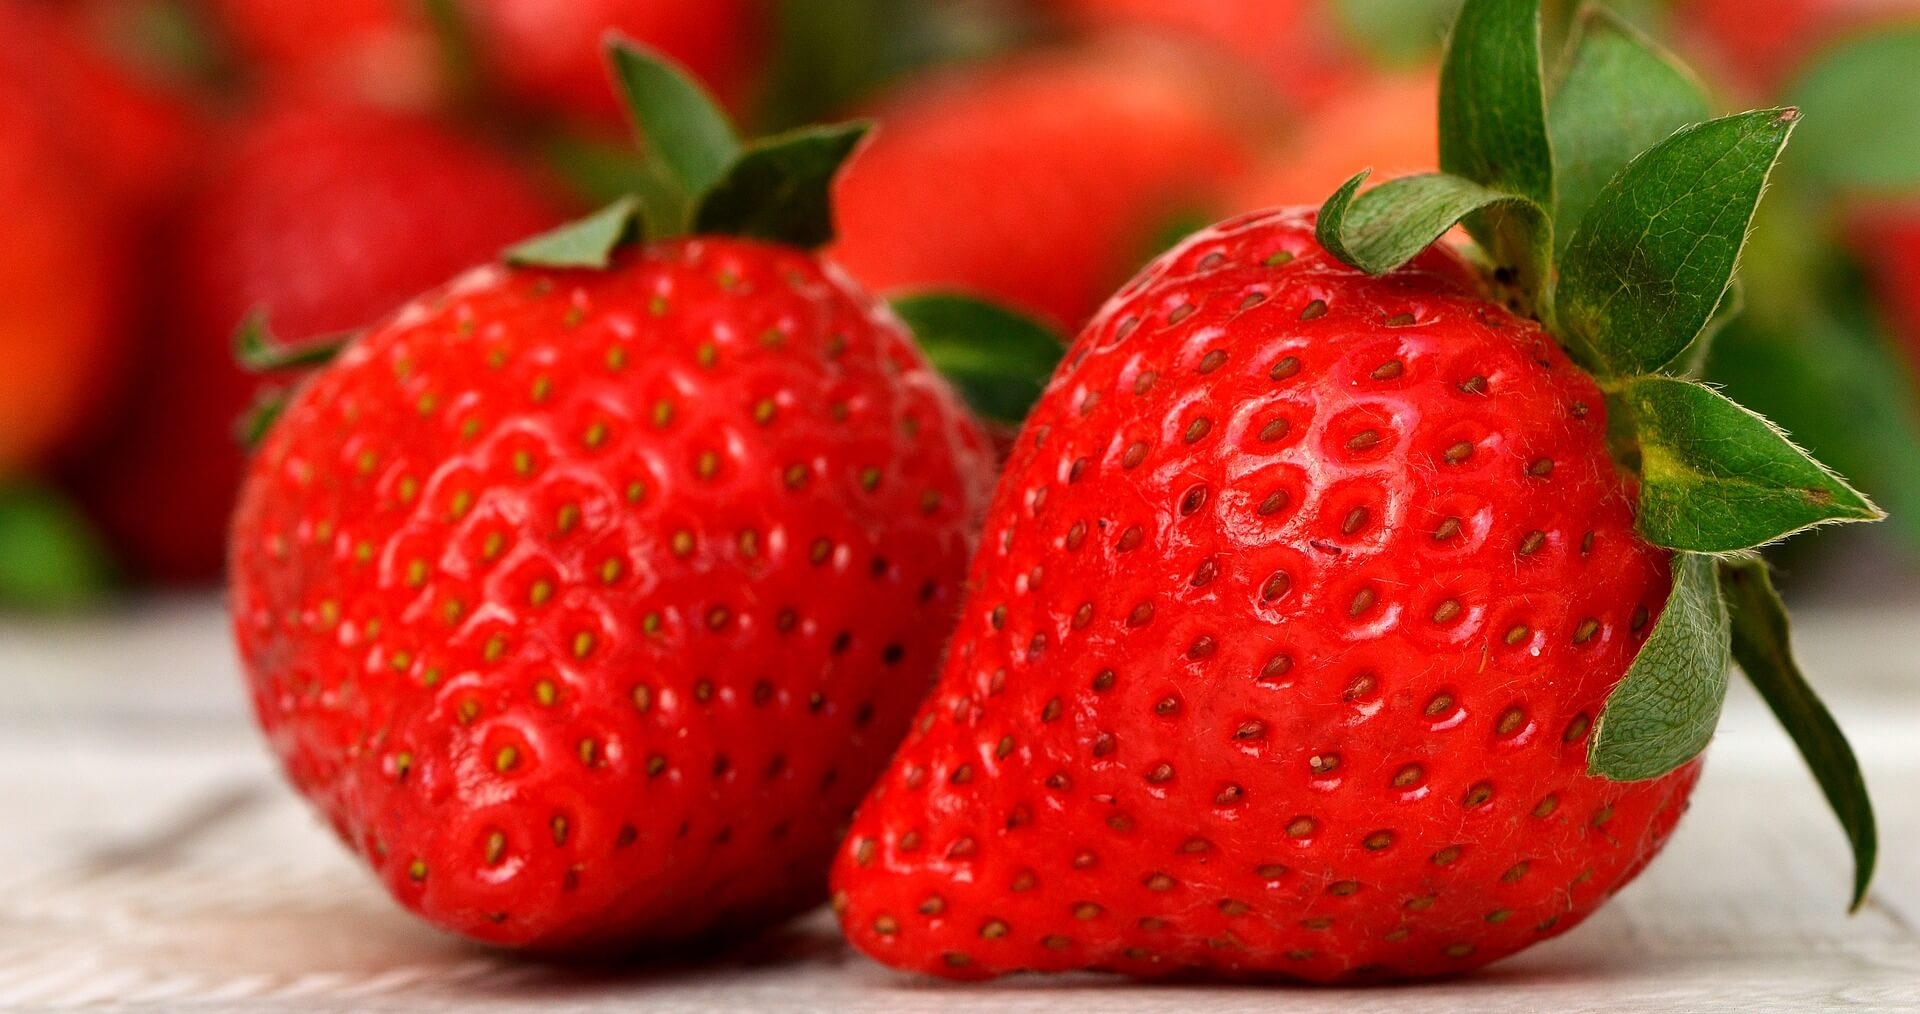 Plant fruit food produce vegetable for good